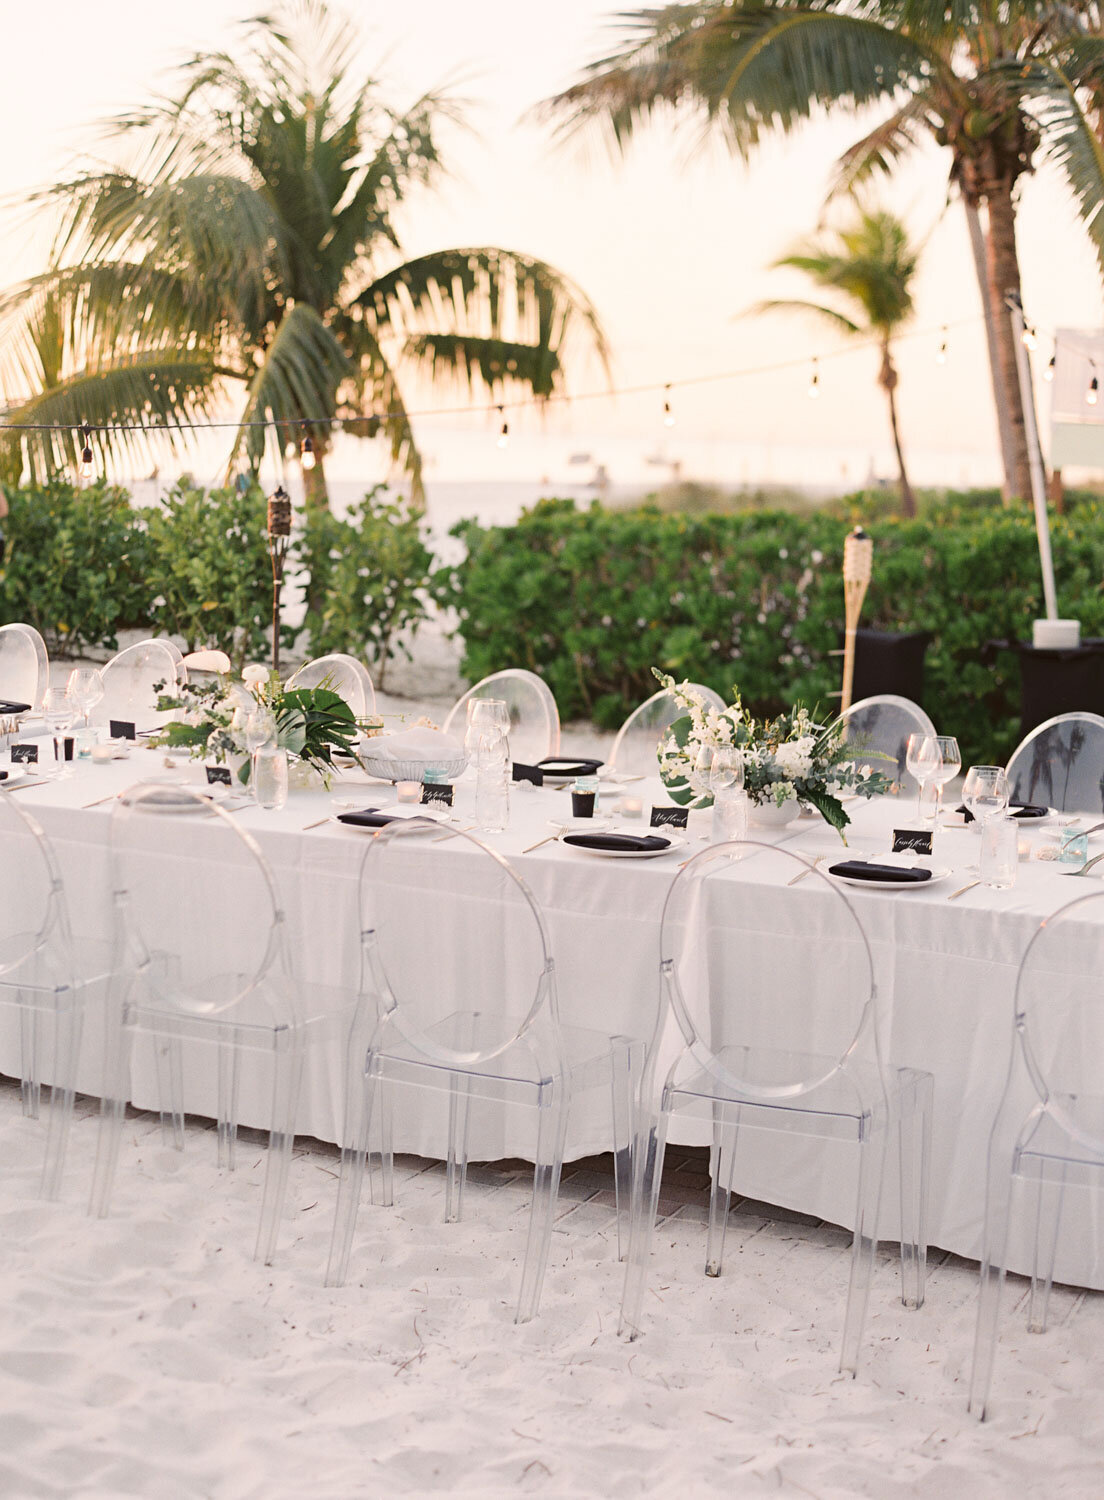 elegant-bohemian-tropical-december-destination-wedding-melanie-gabrielle-photography-martha-stewart-submission-017